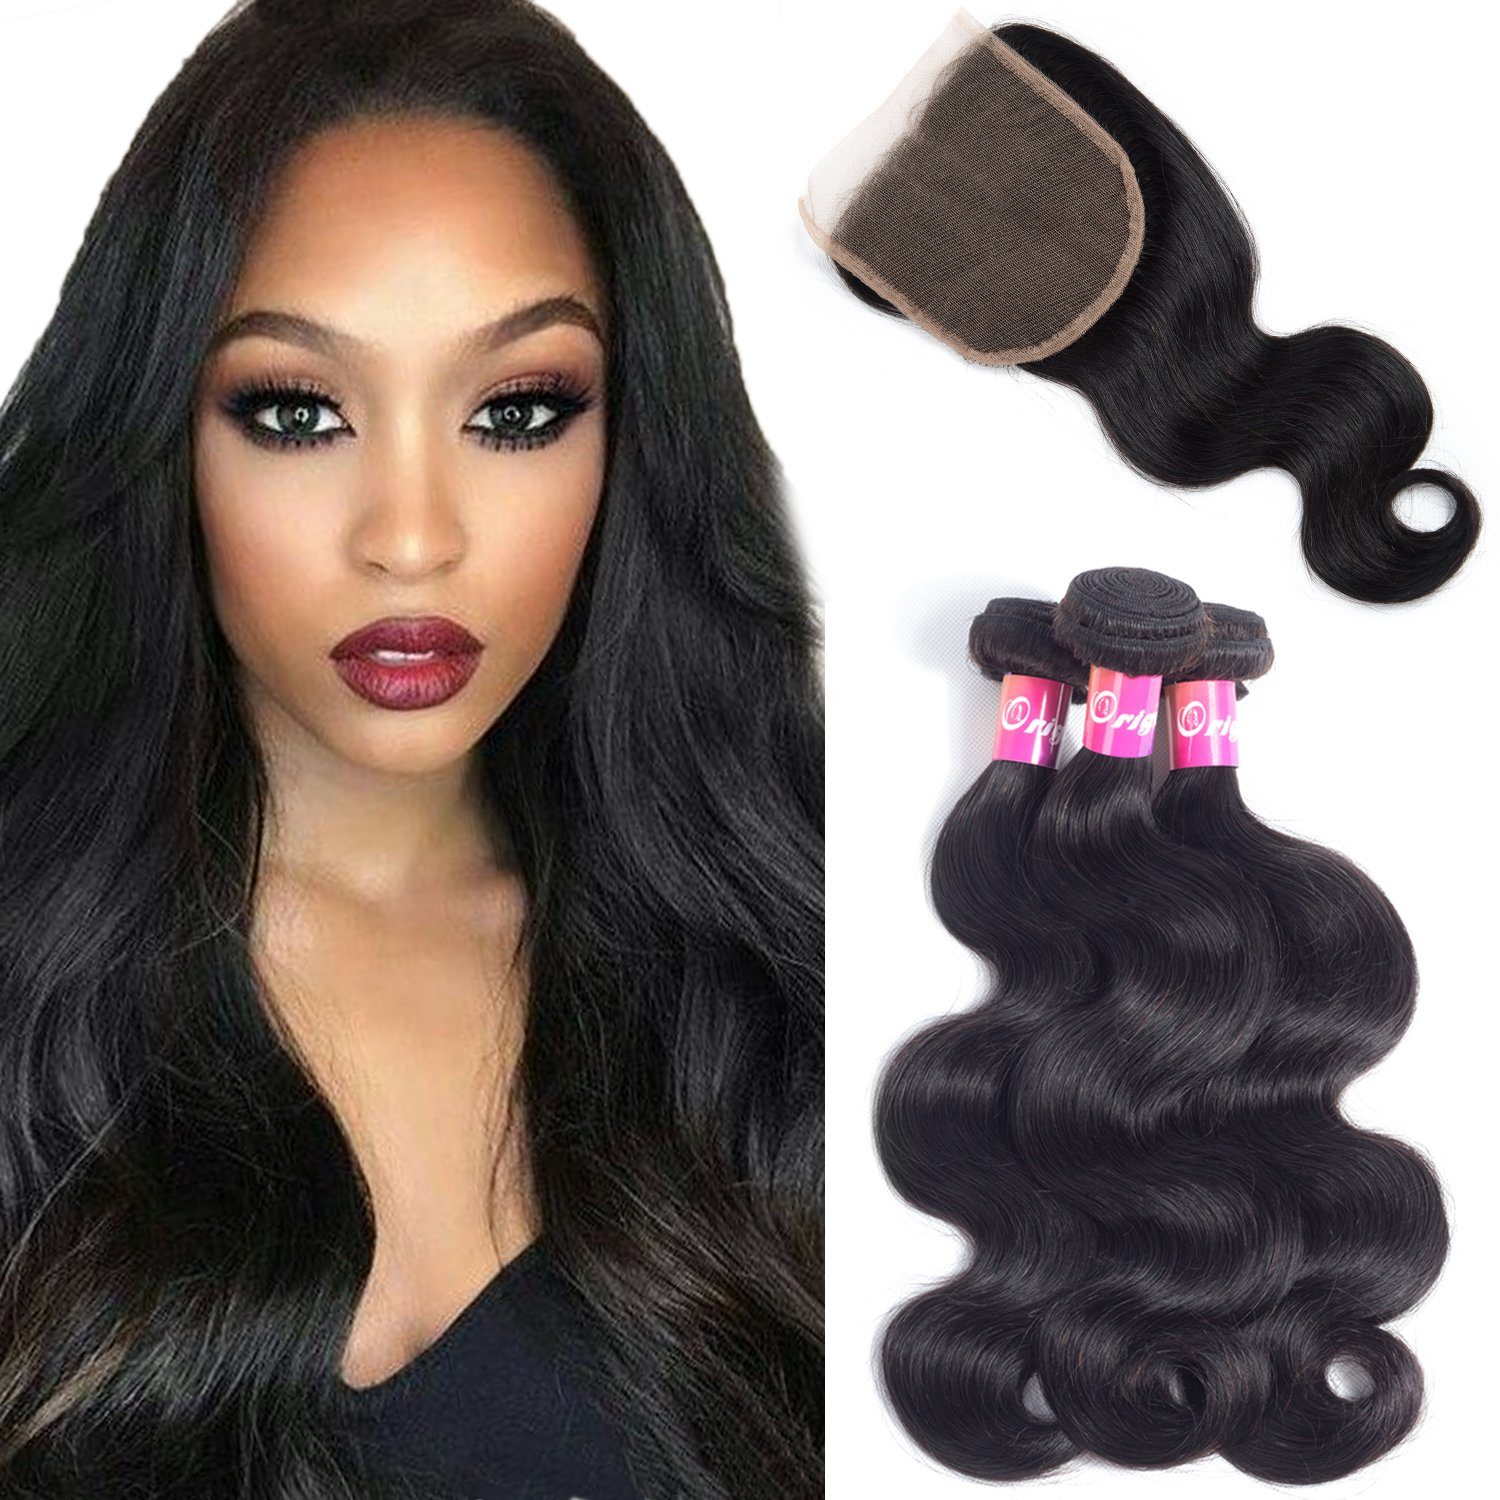 Lace Wigs Search For Flights Debut Hair Peruvian Ear To Ear Lace Frontal Closure 13x4 Free Part With Baby Hair Pre Plucked Straight Human Hair Remy Hair Various Styles